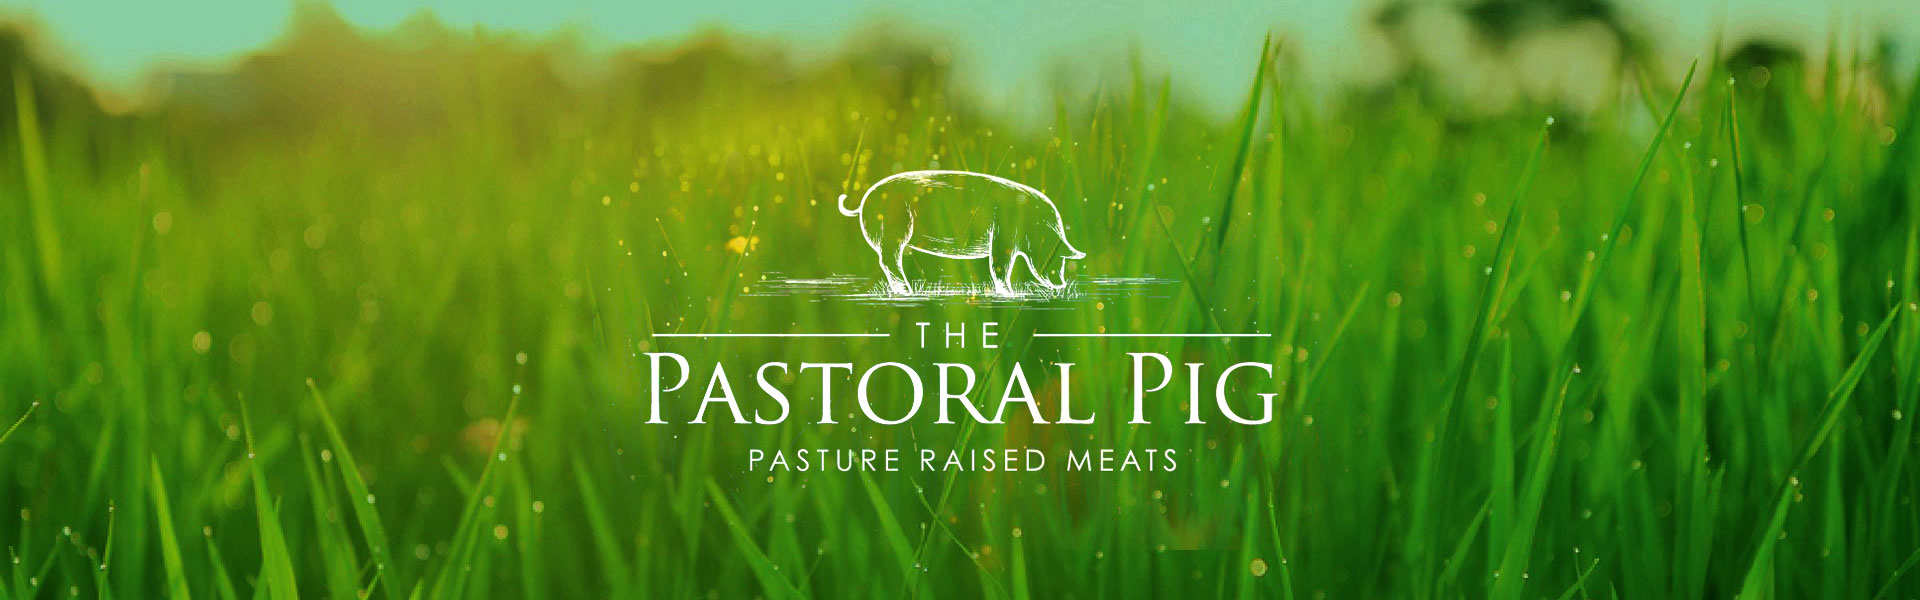 Grass for passture raised meats